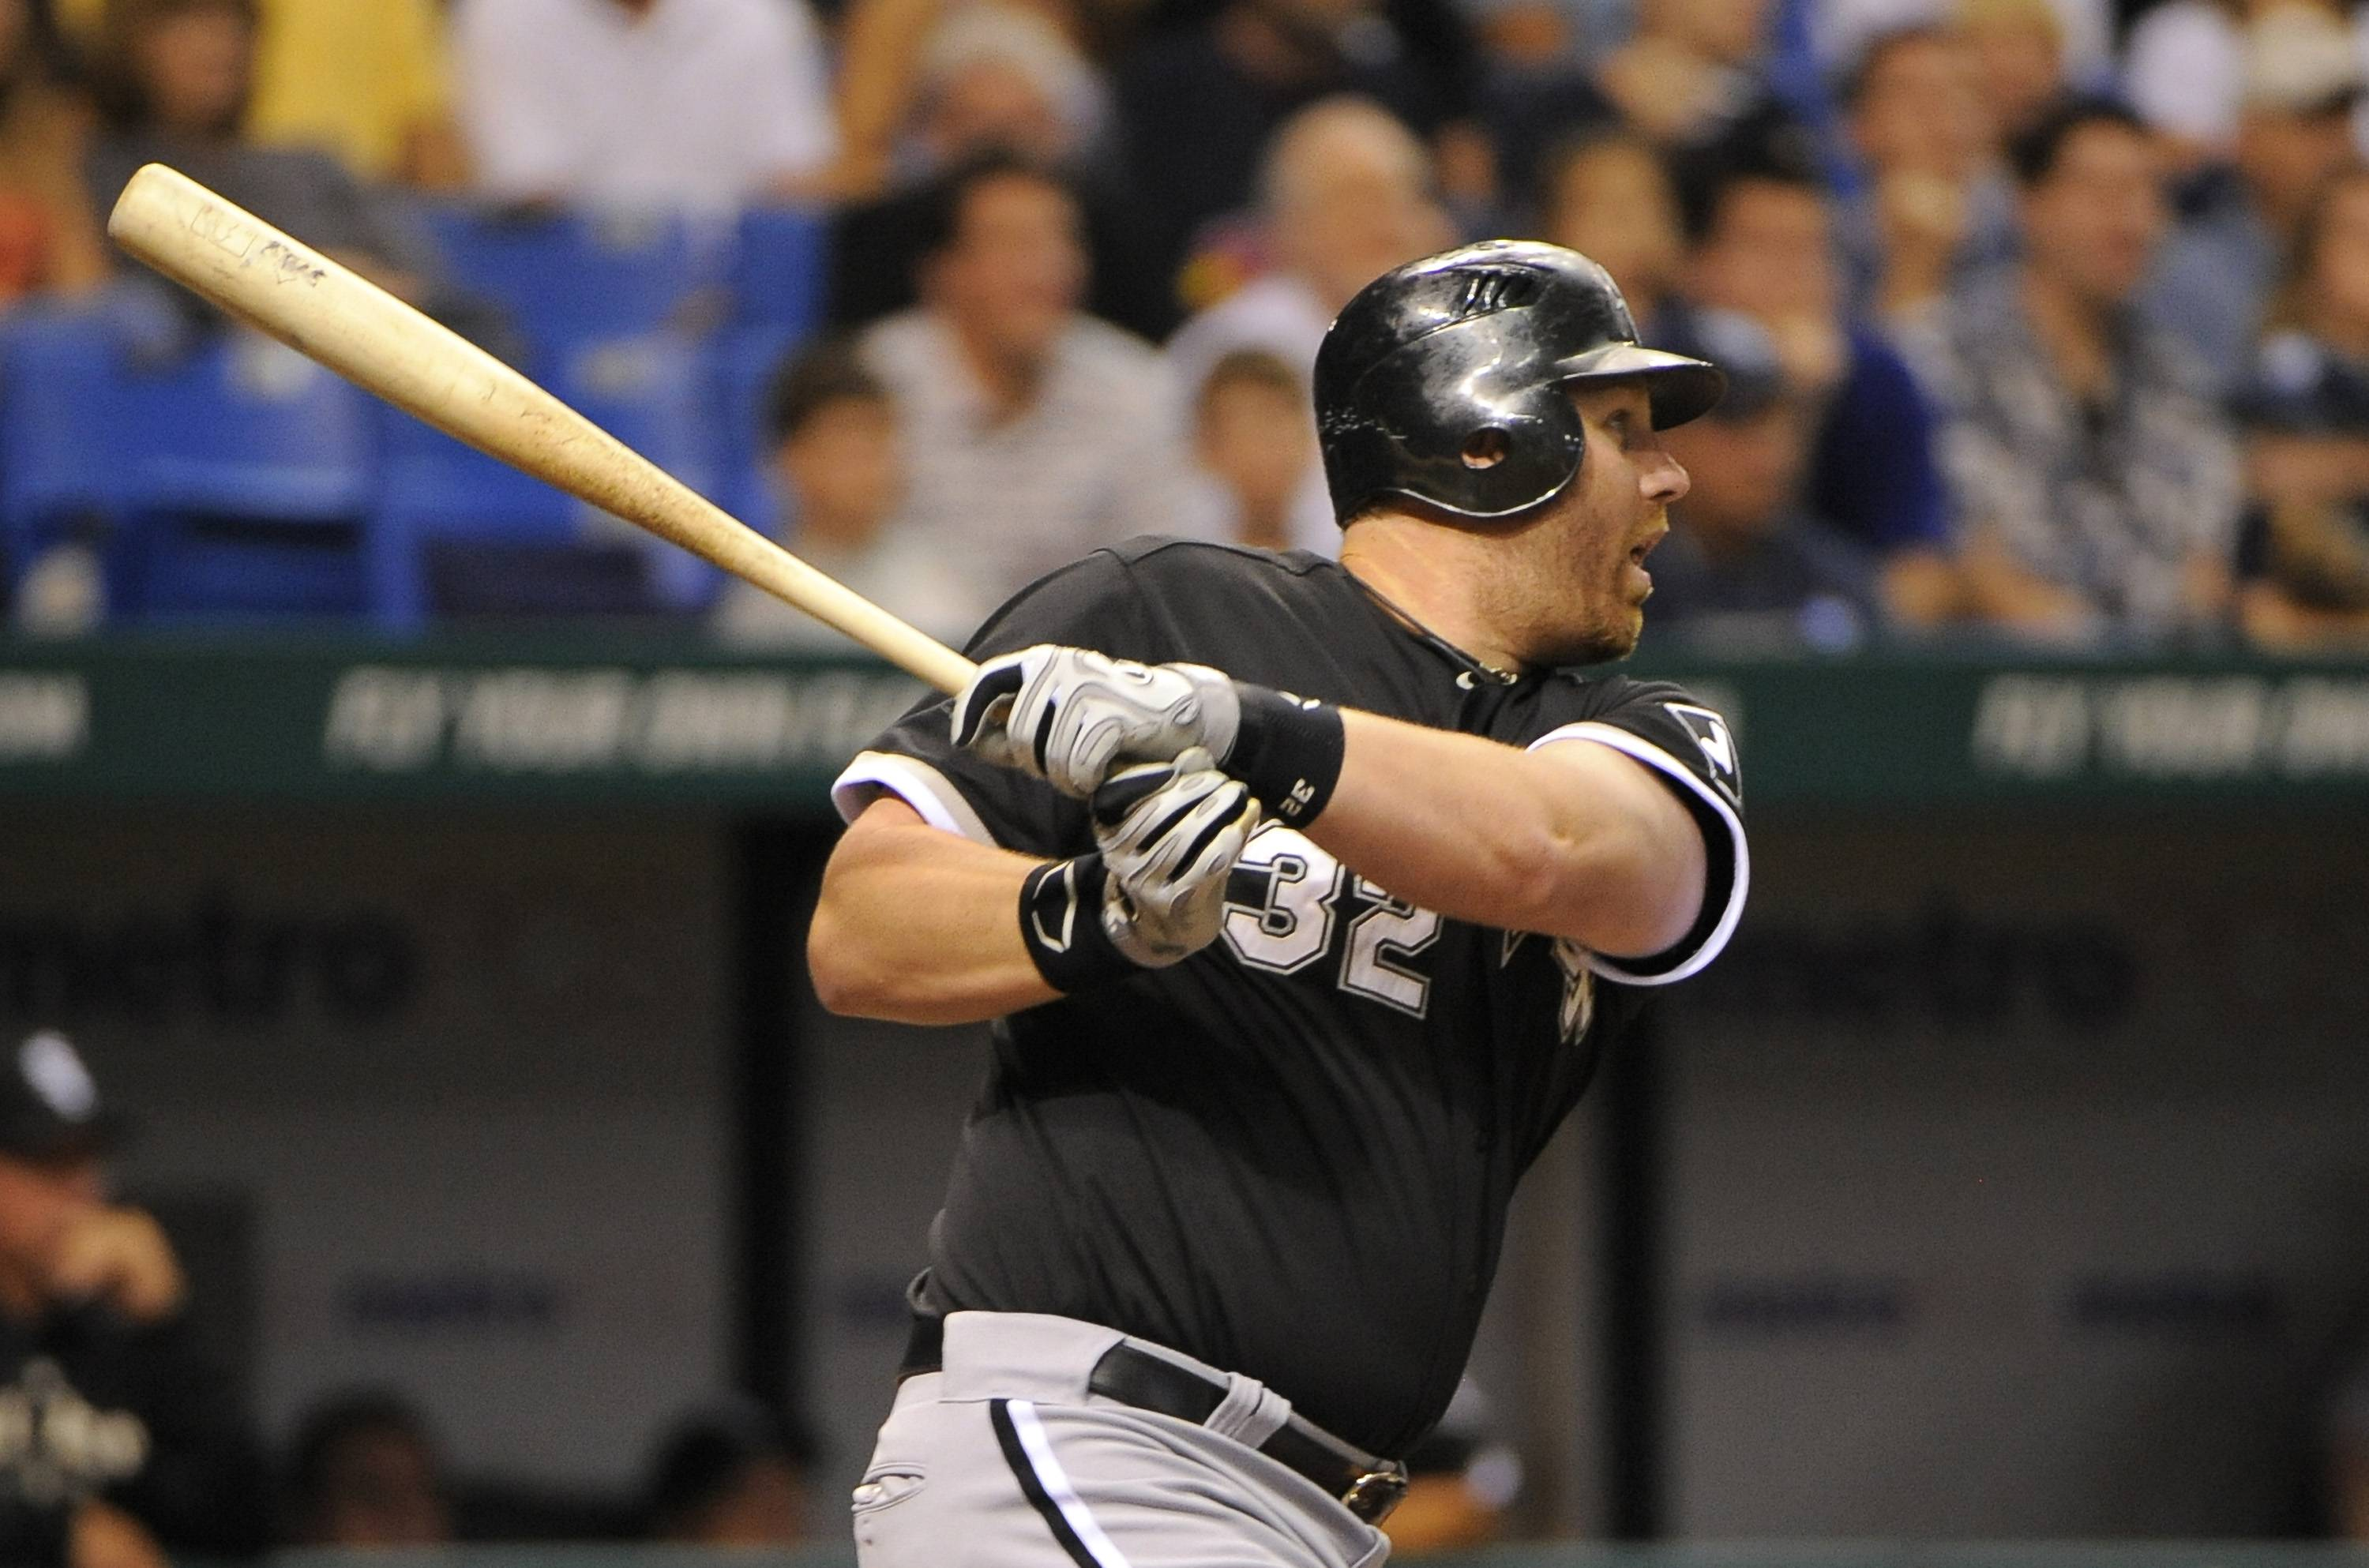 Adam Dunn follows through after hitting a double against the Tampa Bay Rays during the sixth inning Wednesday in St. Petersburg, Fla.